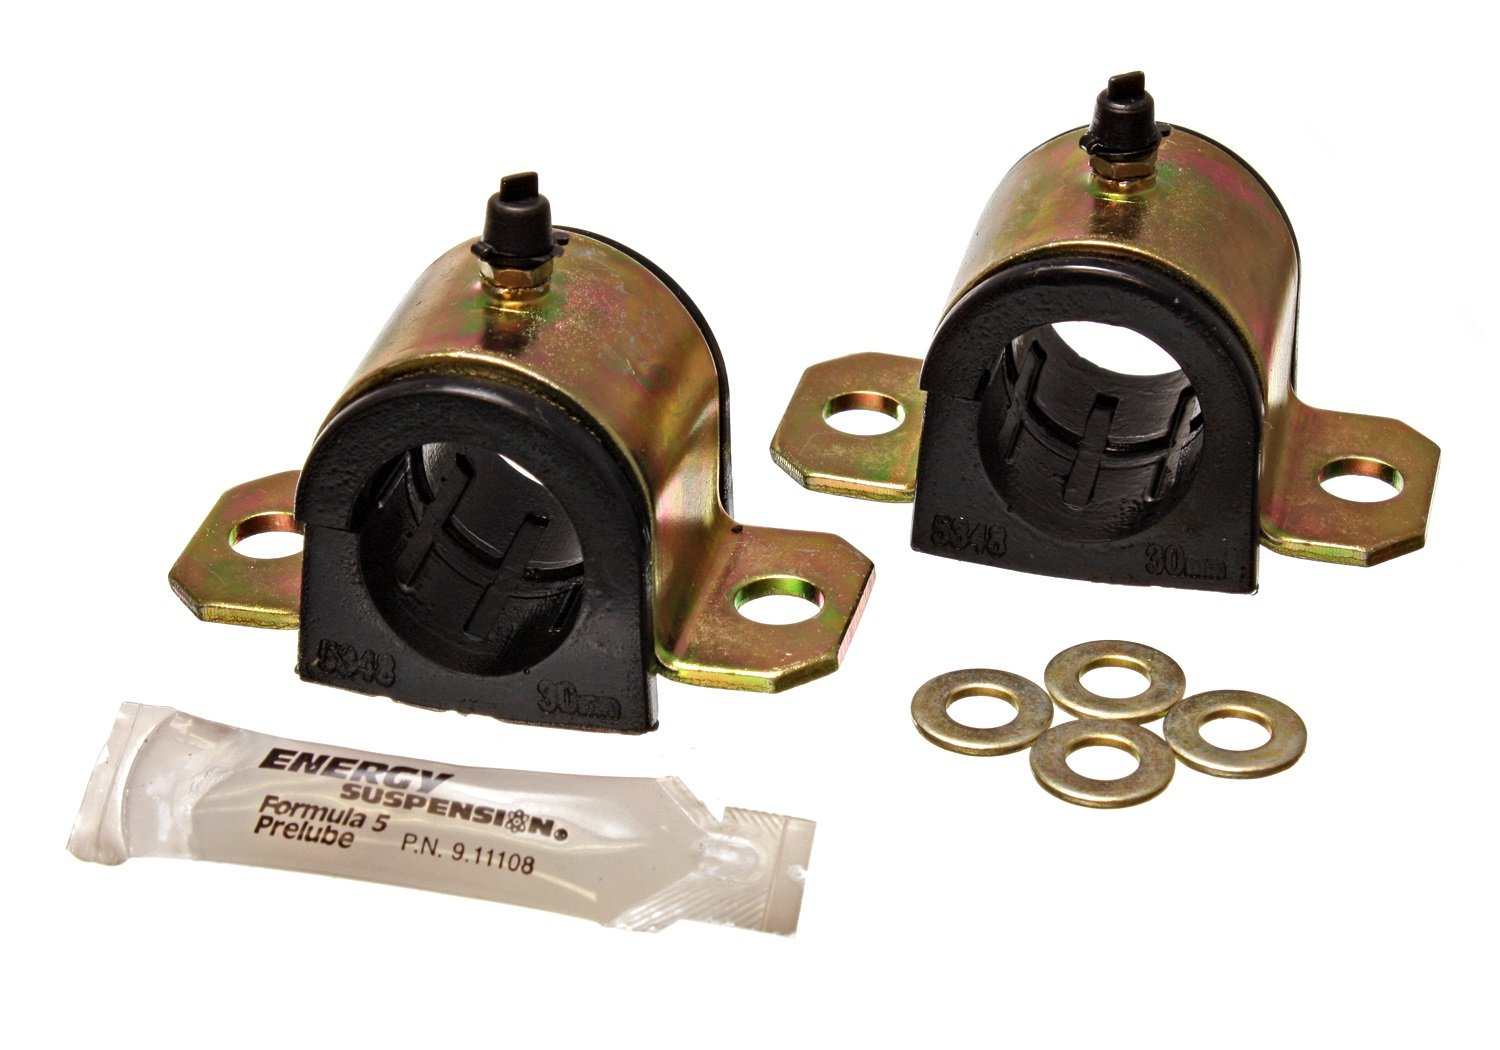 Energy Suspension 8.5121G 30mm Front Sway Bar Set for Toyota